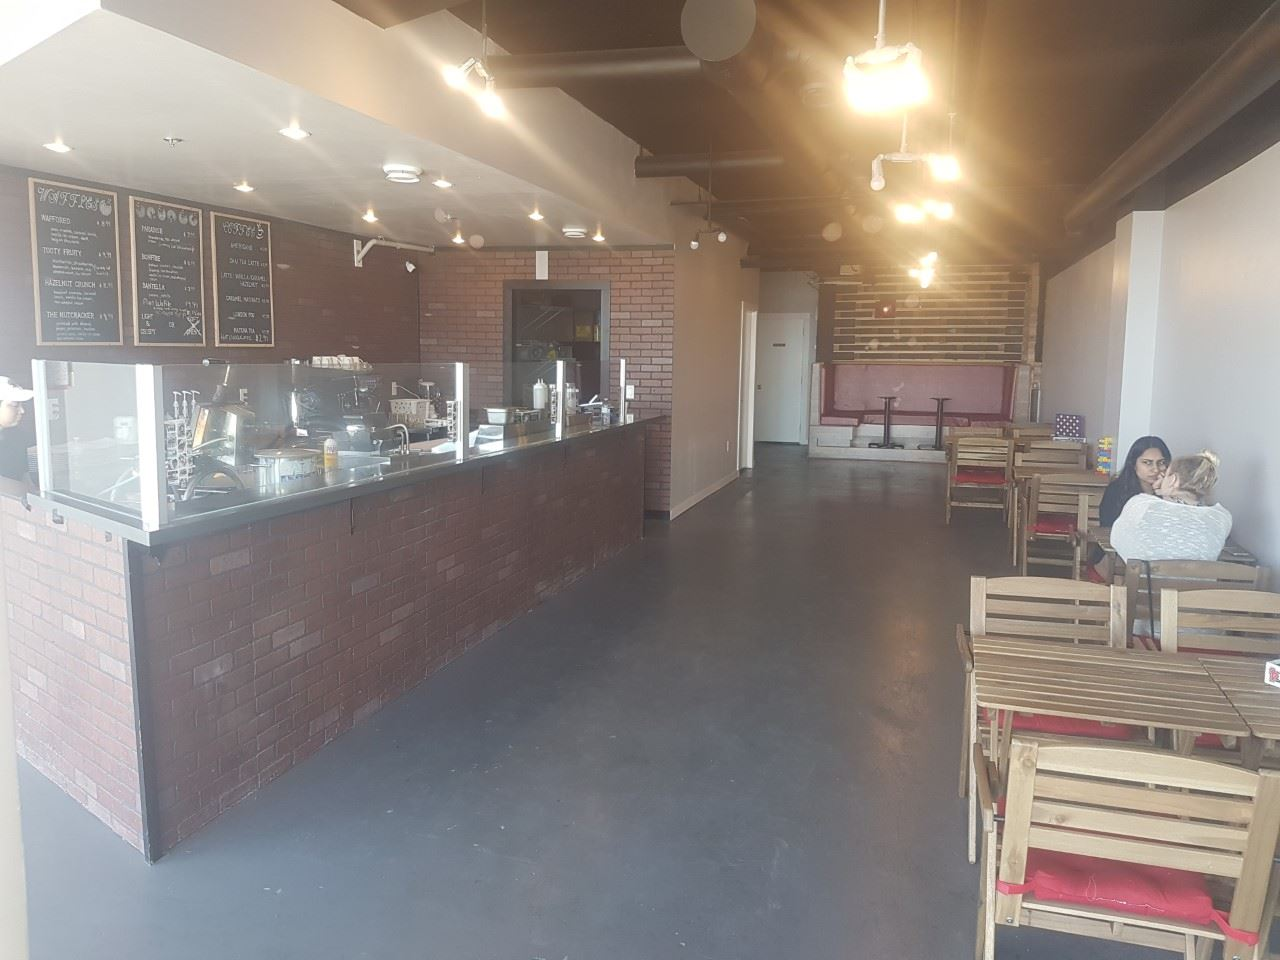 The Wafflers Waffle and Coffee Shop. New business on Marine drive strip for sale. Serving waffles and desserts. Great waterfront location with rent of only $2800 per month. 1000SF. Ready for new ideas! Call now!